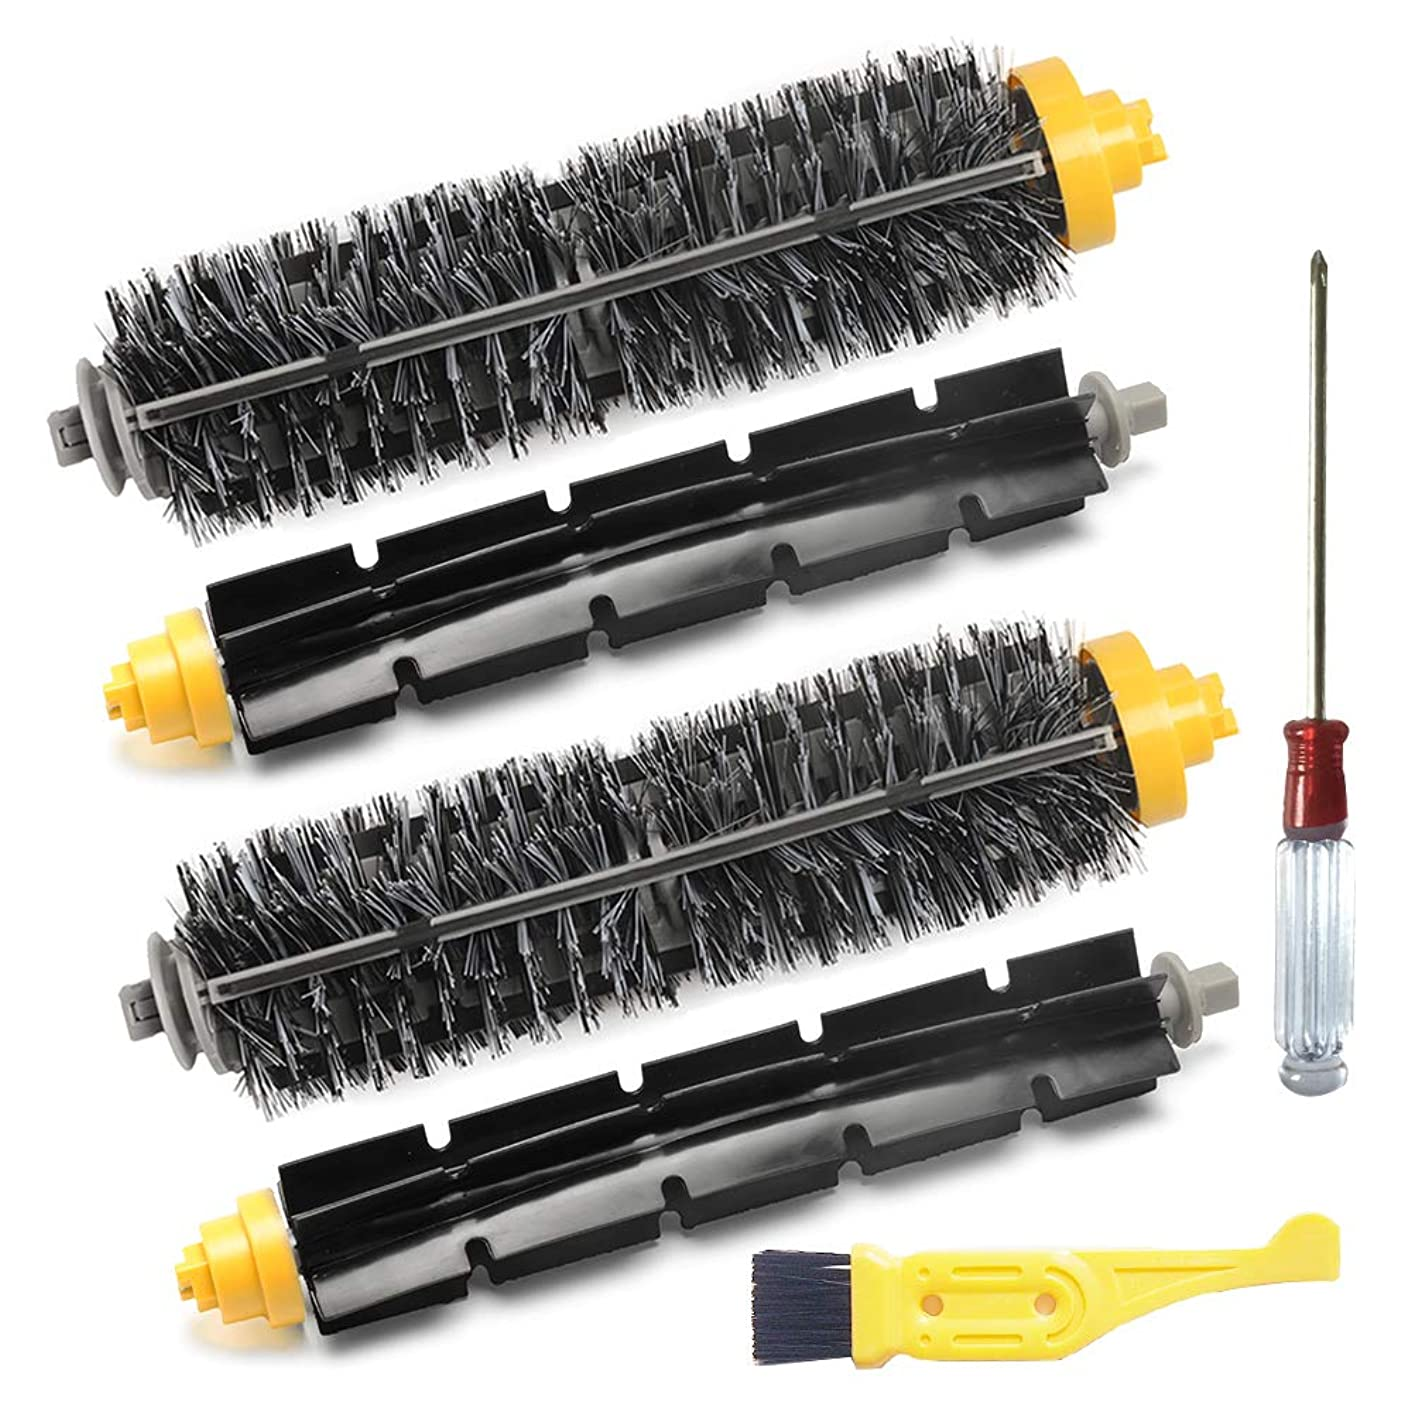 JUMBO FILTER Replenishment Kit for iRobot Roomba 600 700 Series 620 630 650 760 780 Vacuum Cleaner Attachment Include Bristle Brush & Flexible Beater Brush 4 Pack